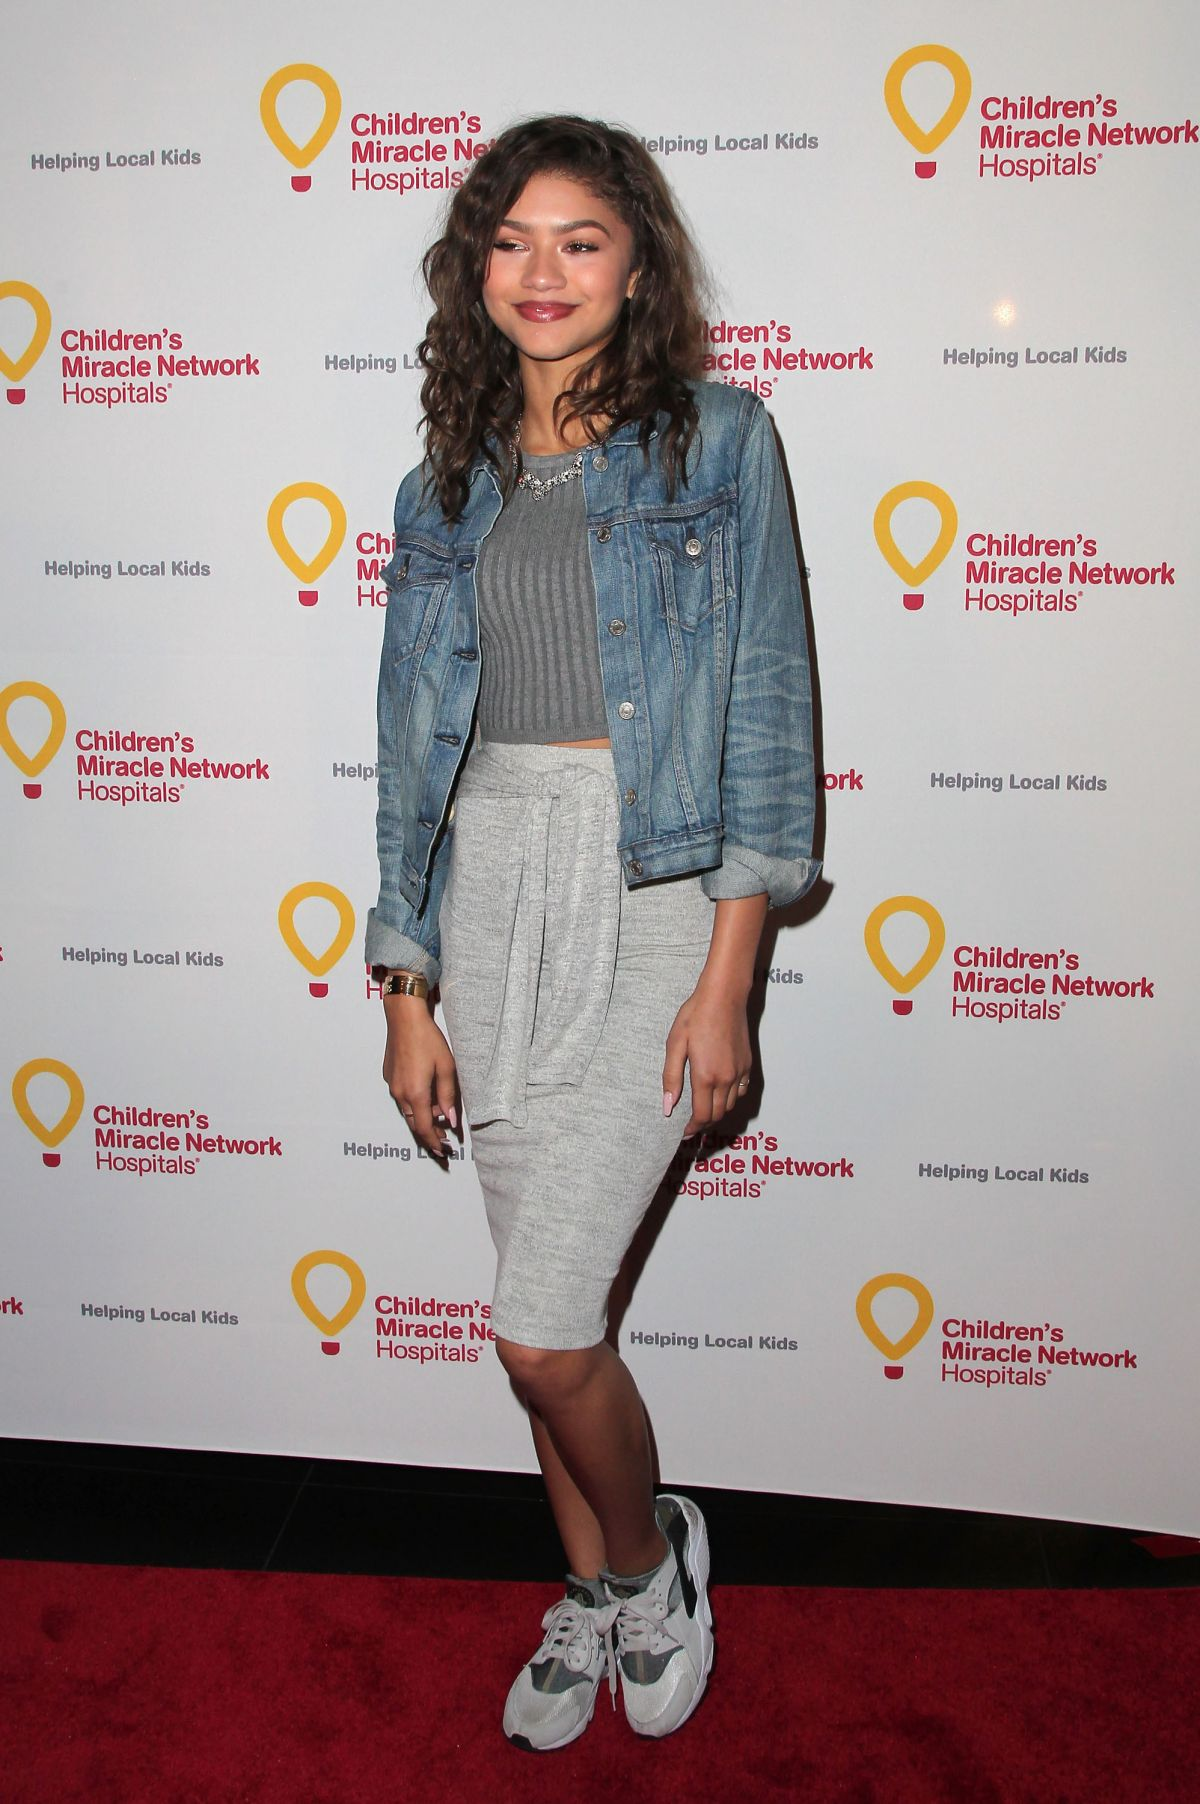 ZENDAYA COLEMAN at Put Your Money where the Miracles Are Campaign Lainch in Hollywood